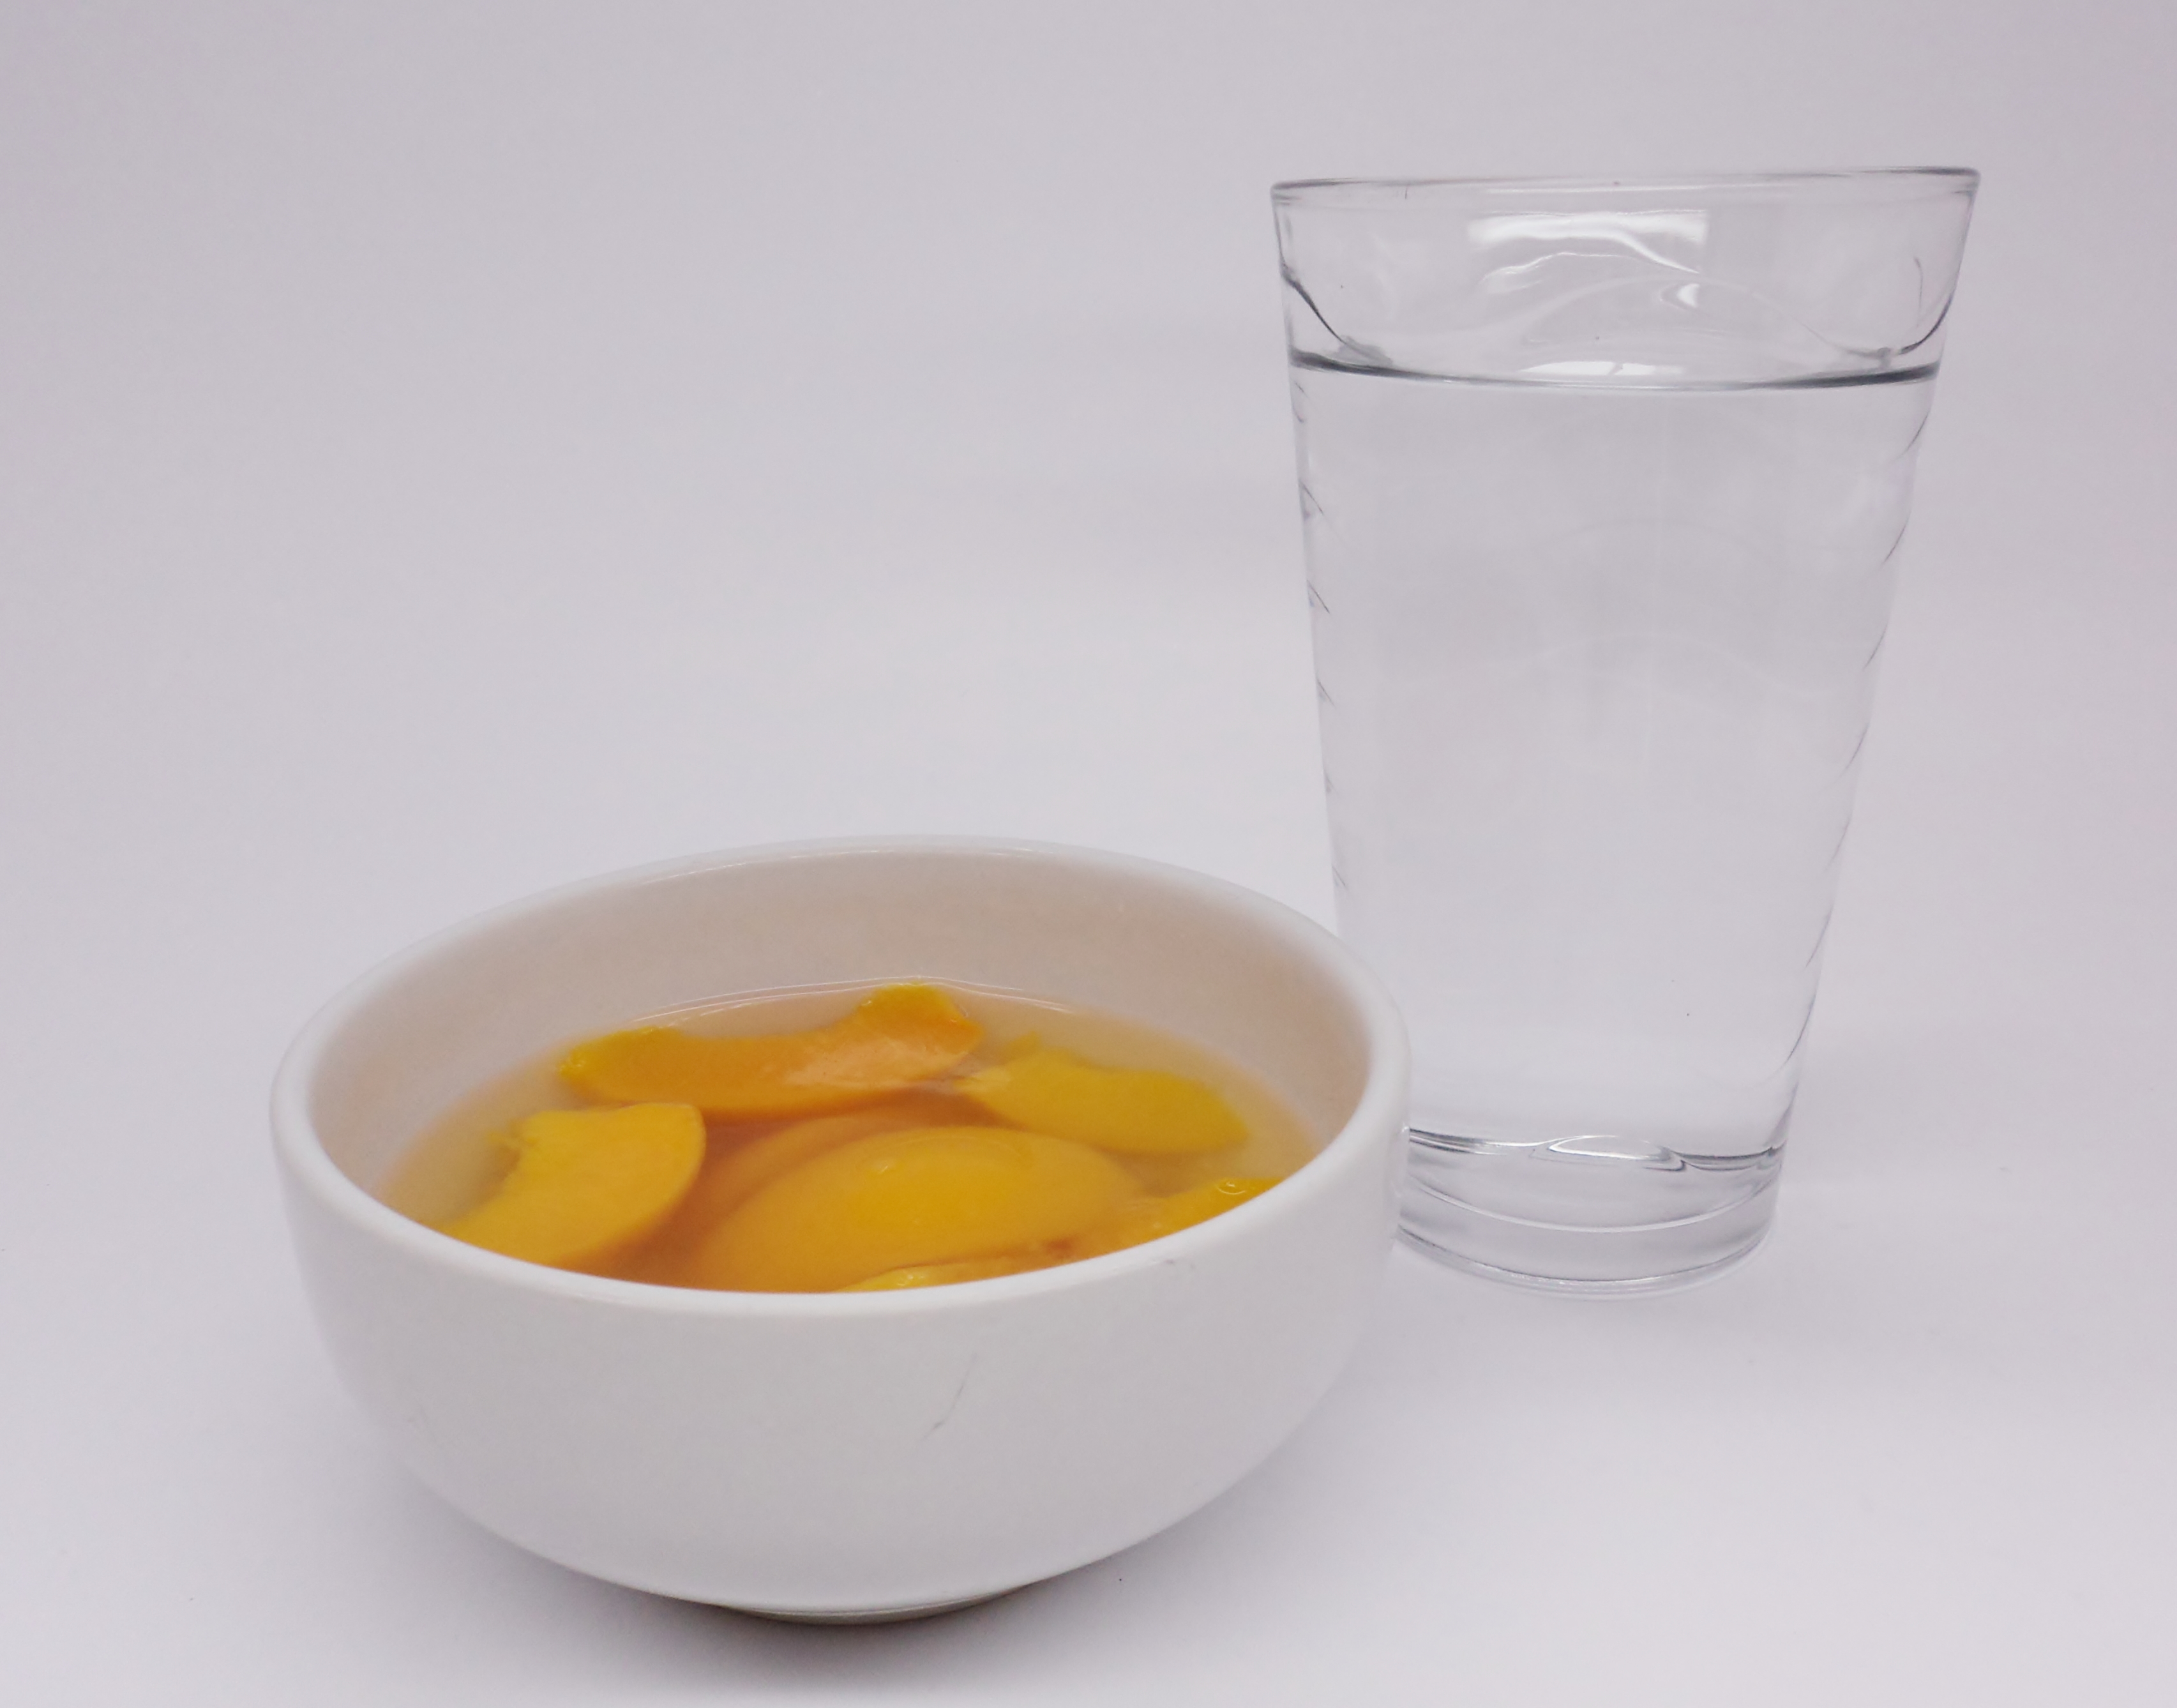 Water and fruit, Bowl, Drink, Food, Fruits, HQ Photo